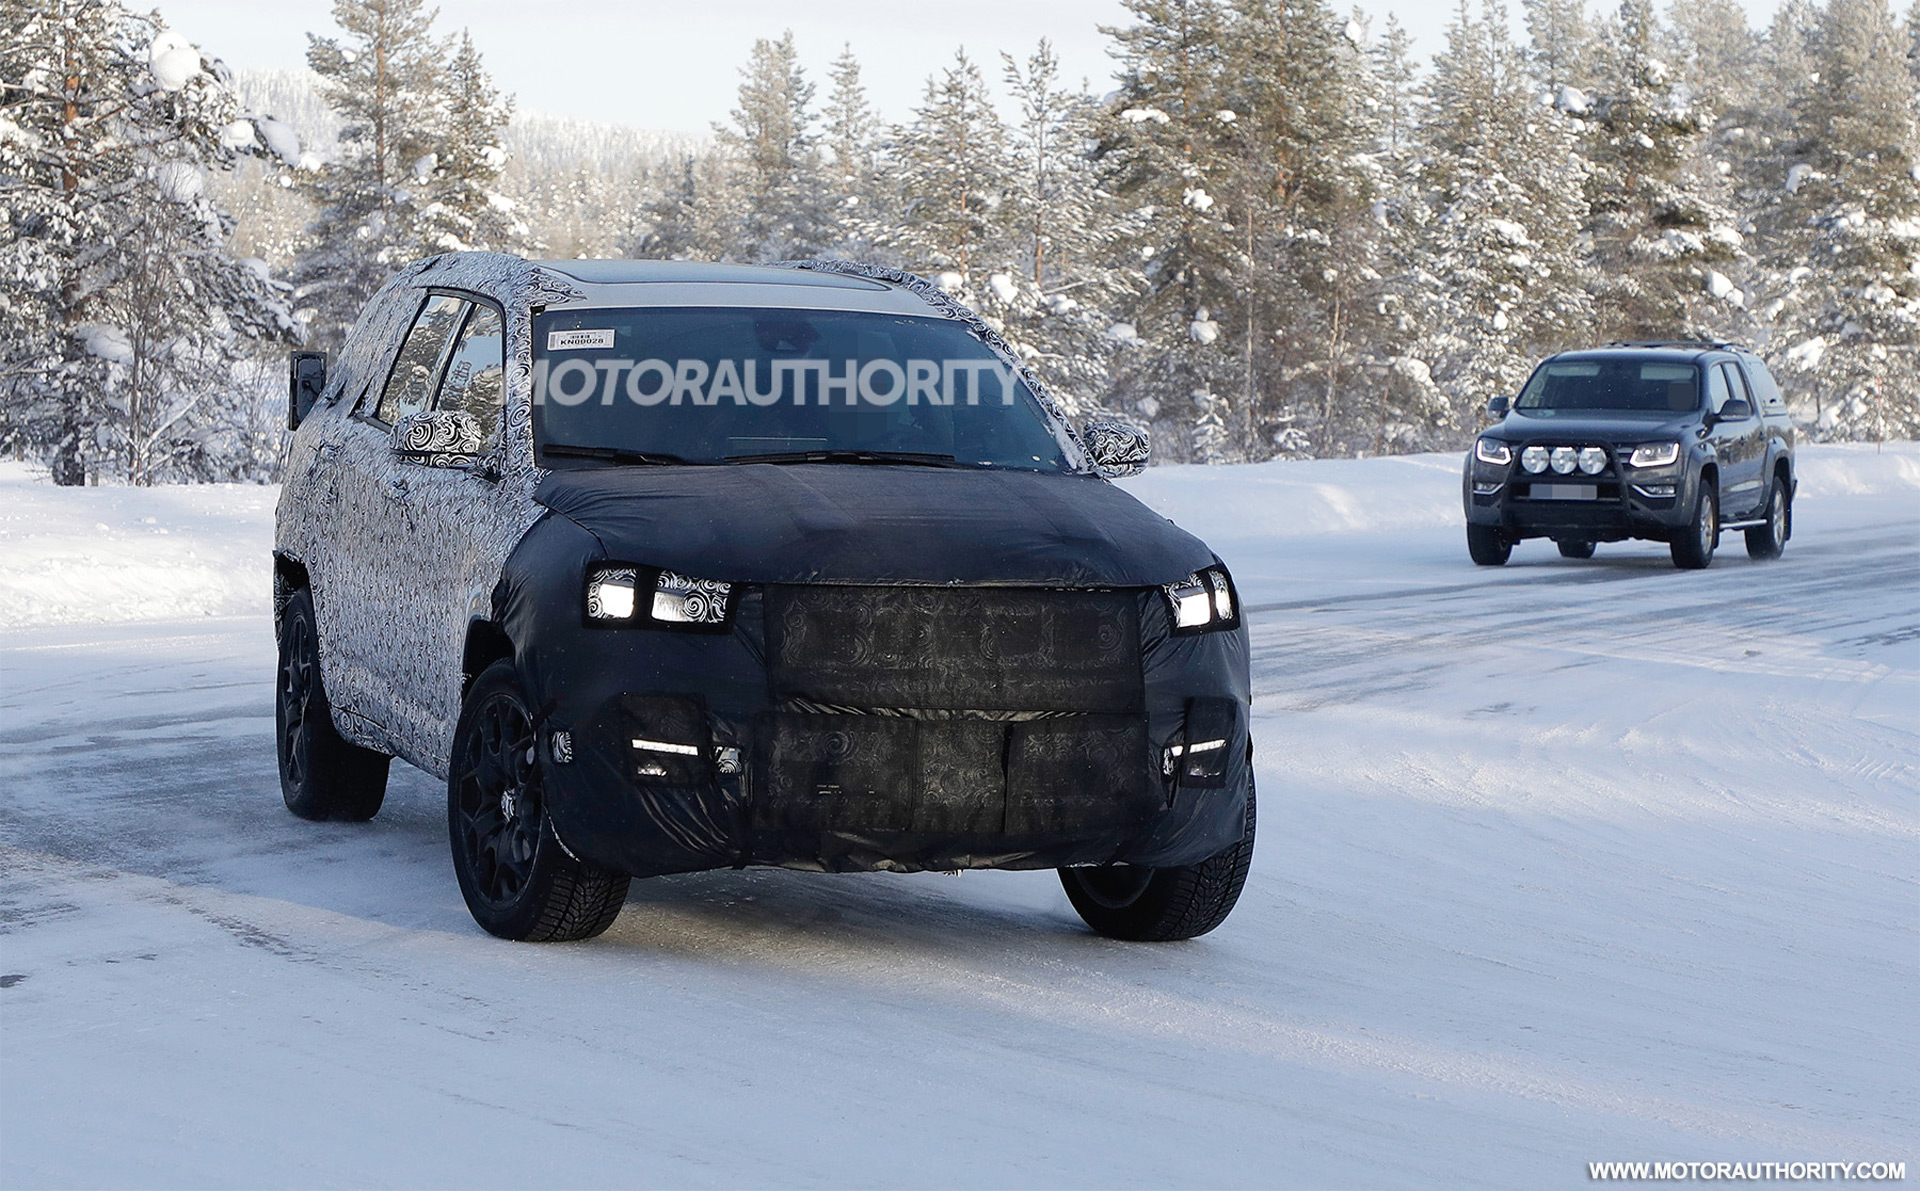 2022 Jeep Compass-based 3-row crossover spy shots: Compact family hauler in the works